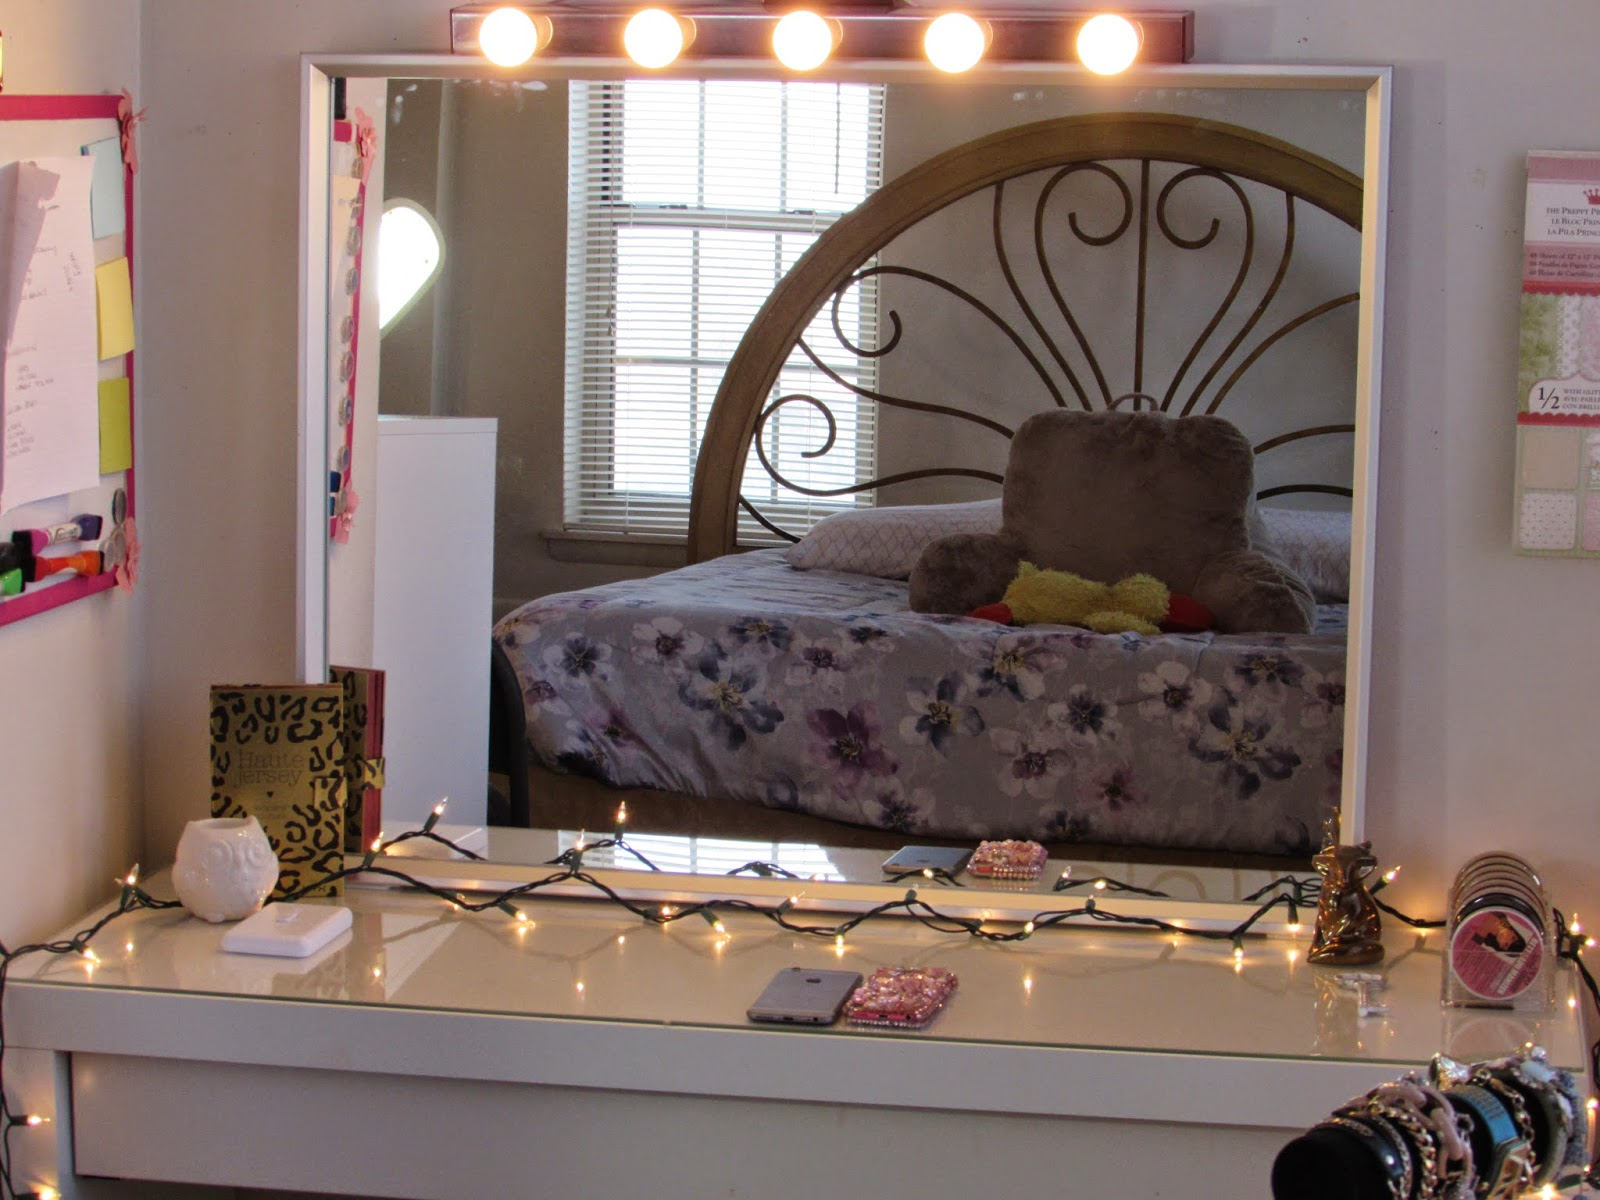 diy vanity light mirror. DIY Hollywood Vanity Light Mirror  Room Decor Easy Cheap NO DRILLING Beauty By Genecia